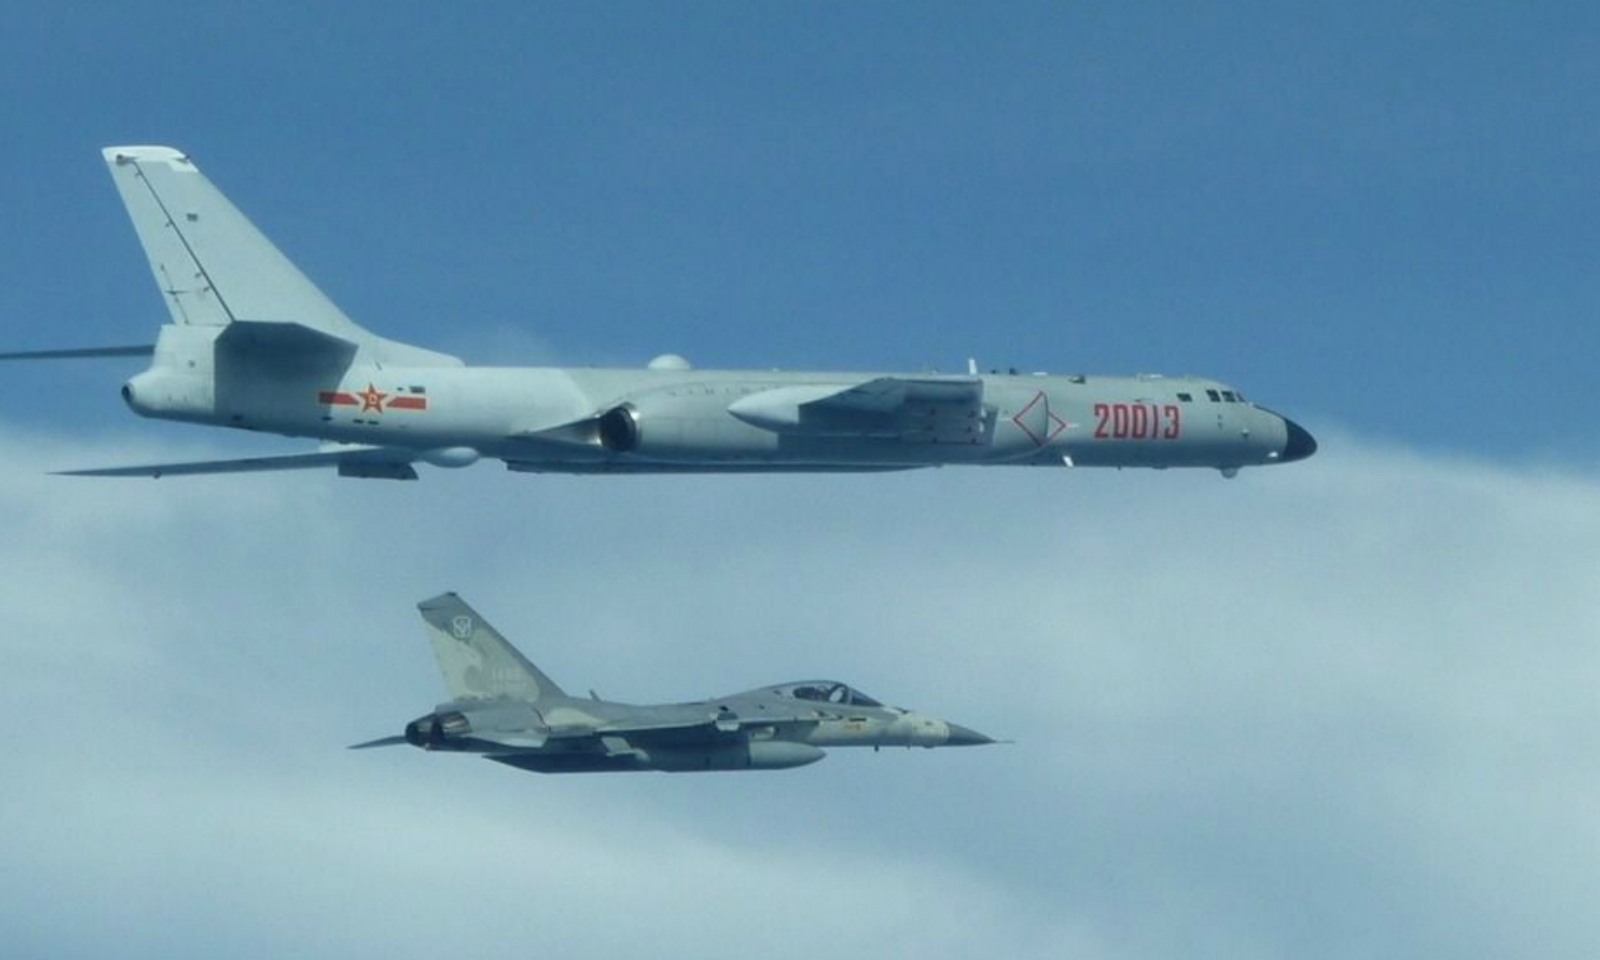 'Small and fast defense assets may be best' to protect Taiwan